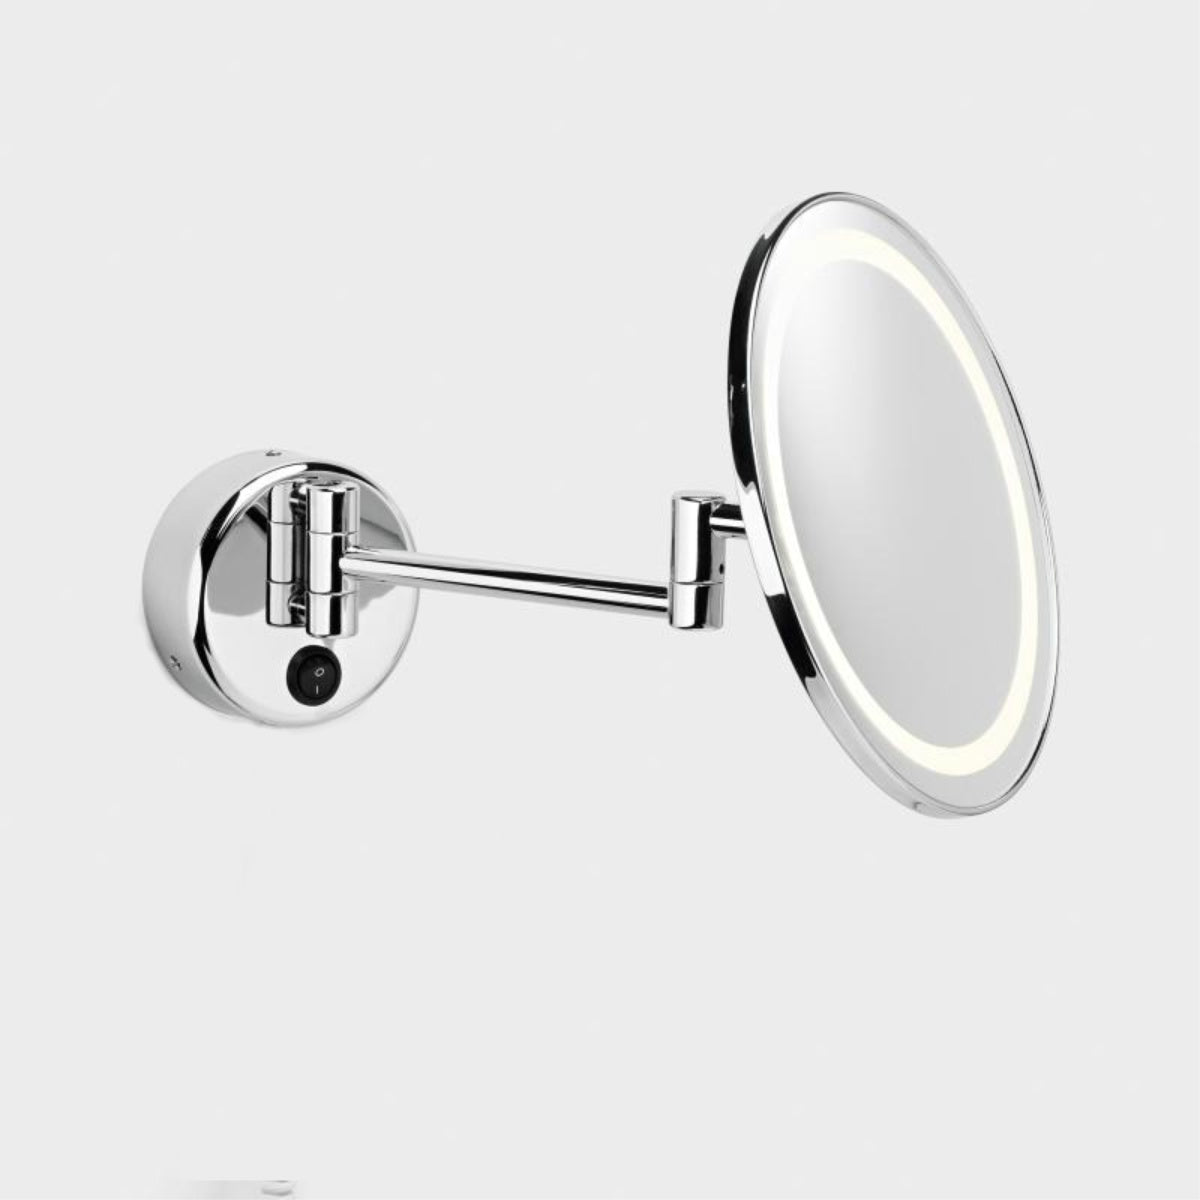 Frasco BiColour LED Mirror, 5x, Round